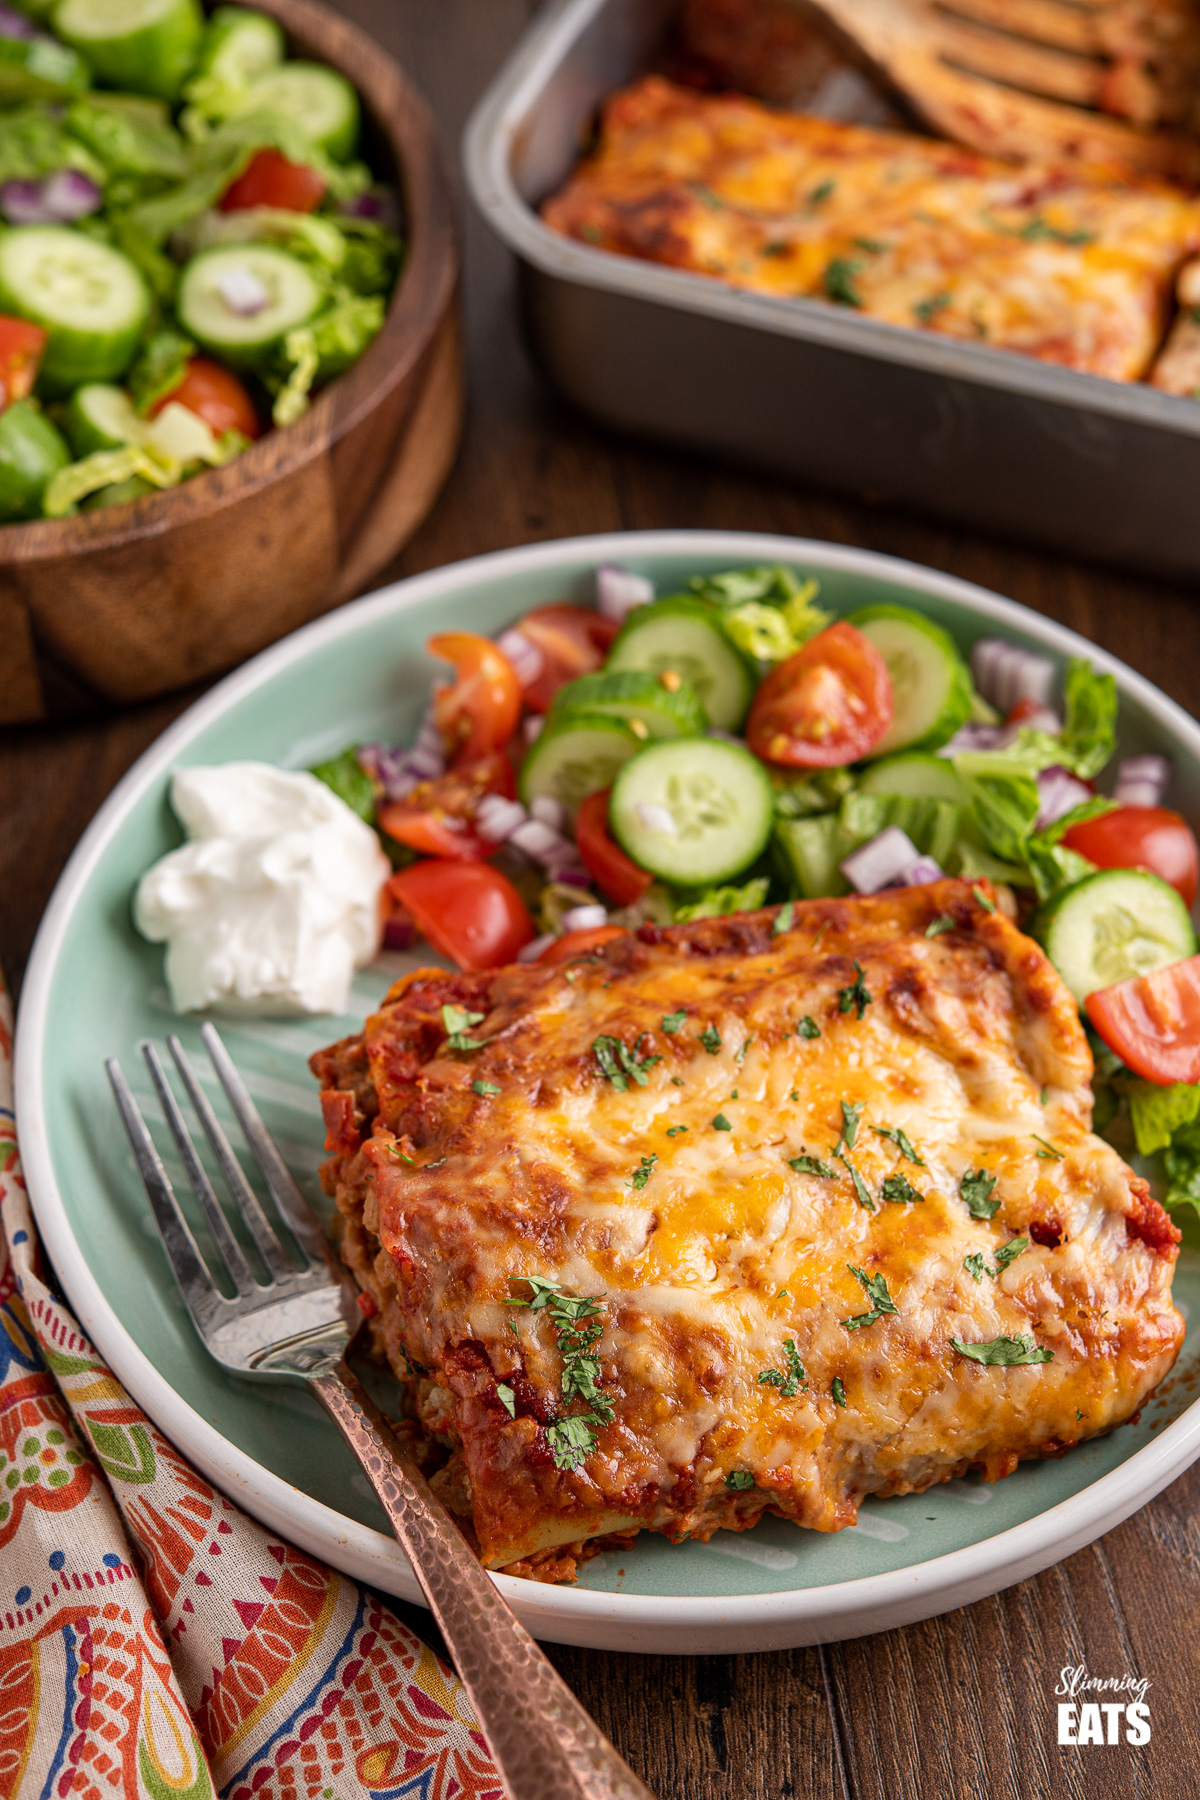 serving of pasta chicken enchiladas on a light teal plate with mixed salad and soured cream